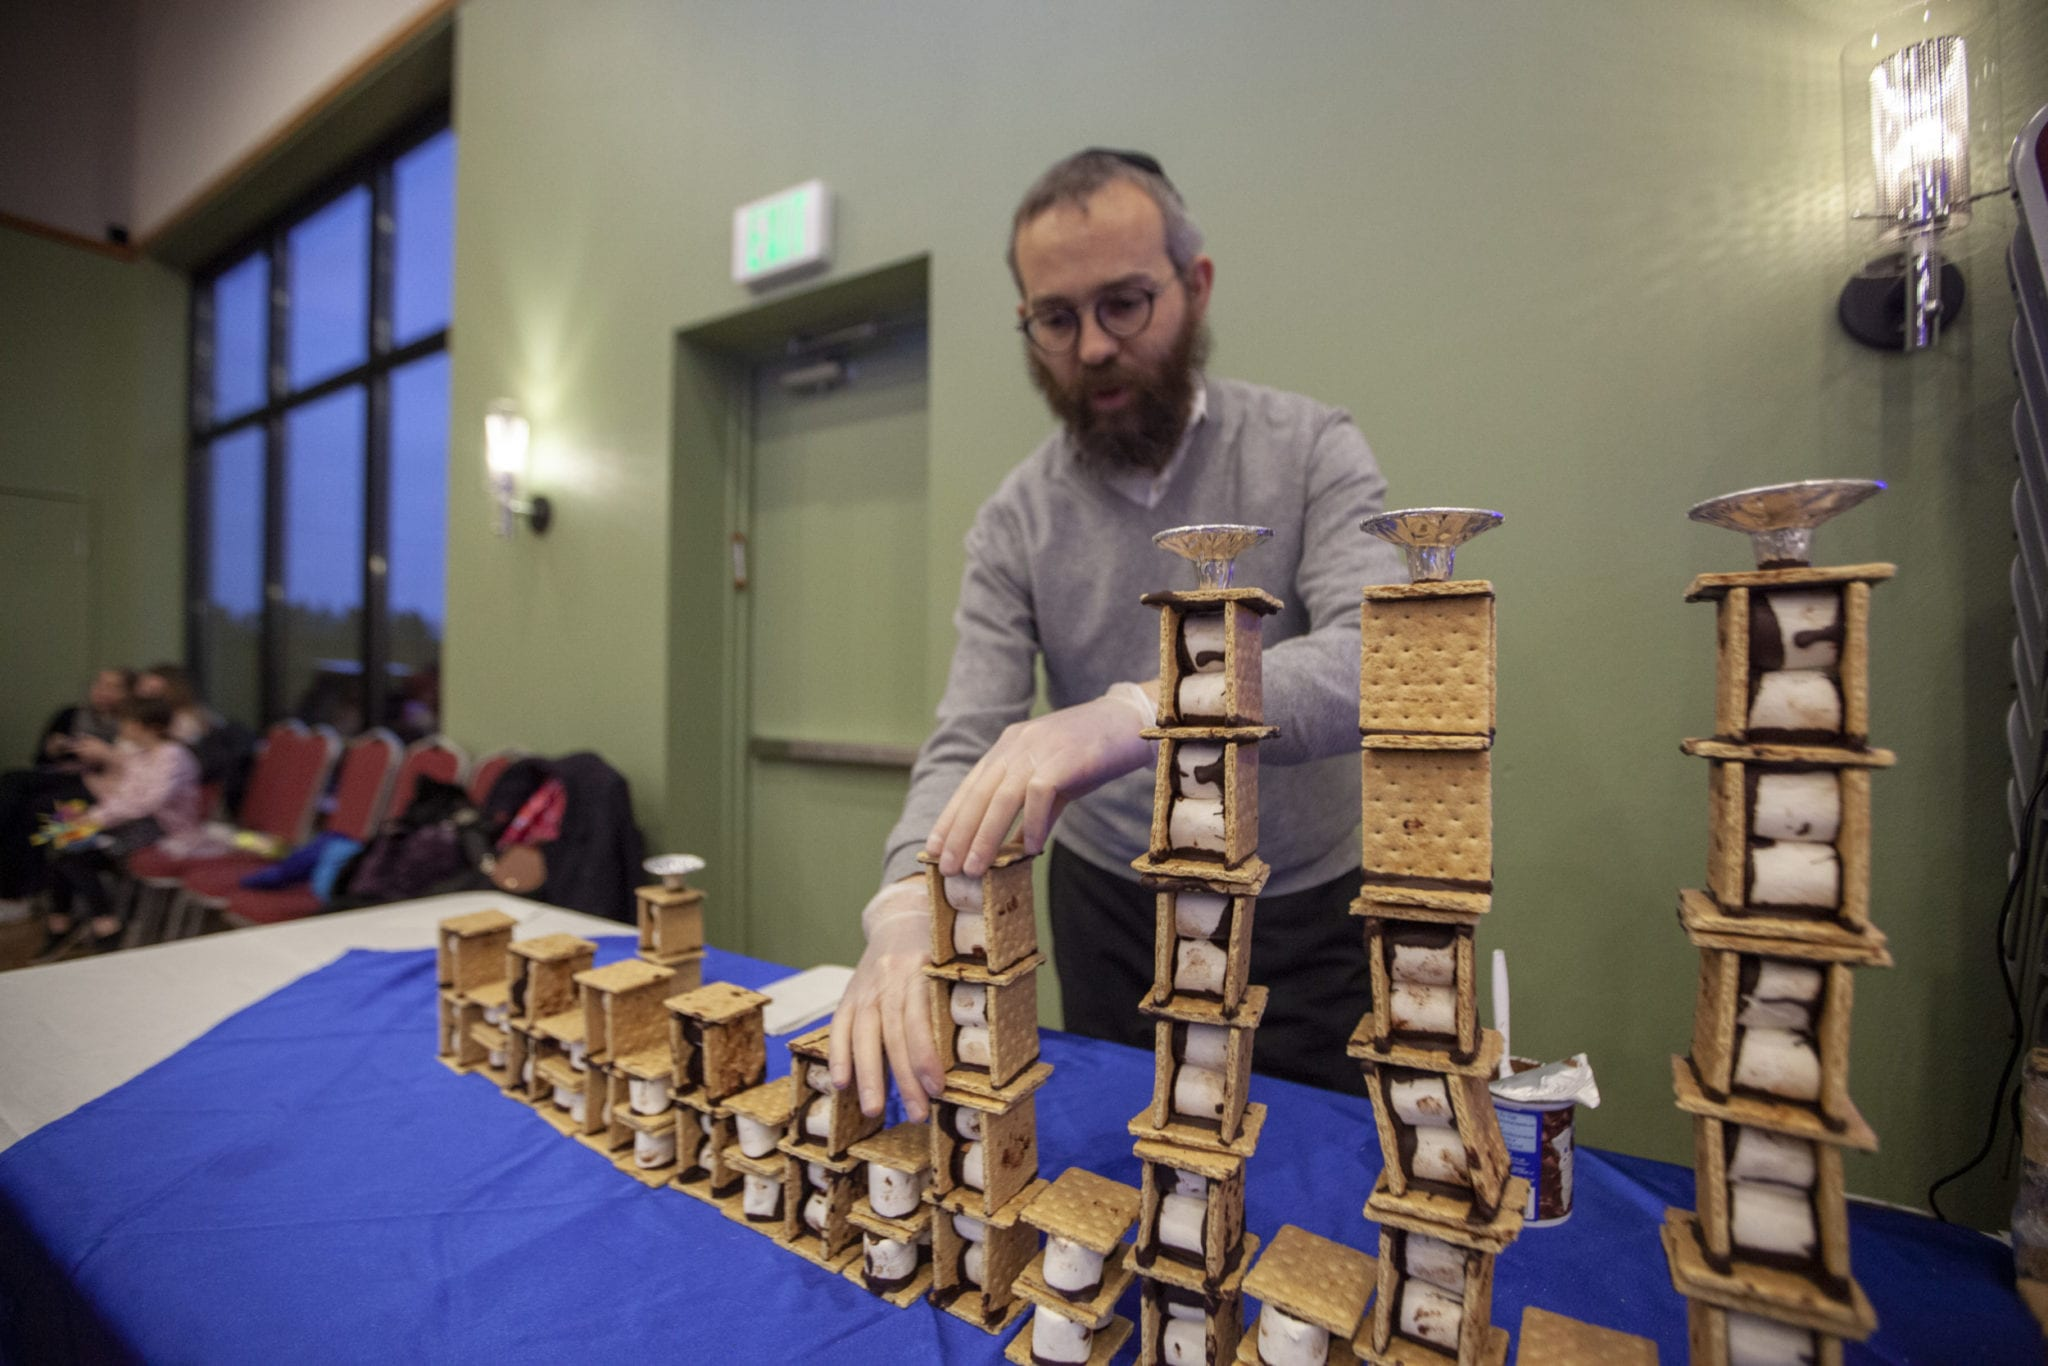 Rabbi Shmulik Greenberg, of the Chabad Jewish Center, assembles a huge menorah made of s'mores at the synagogue's annual kids celebration for Hanukkah. Photo by Jacob Granneman